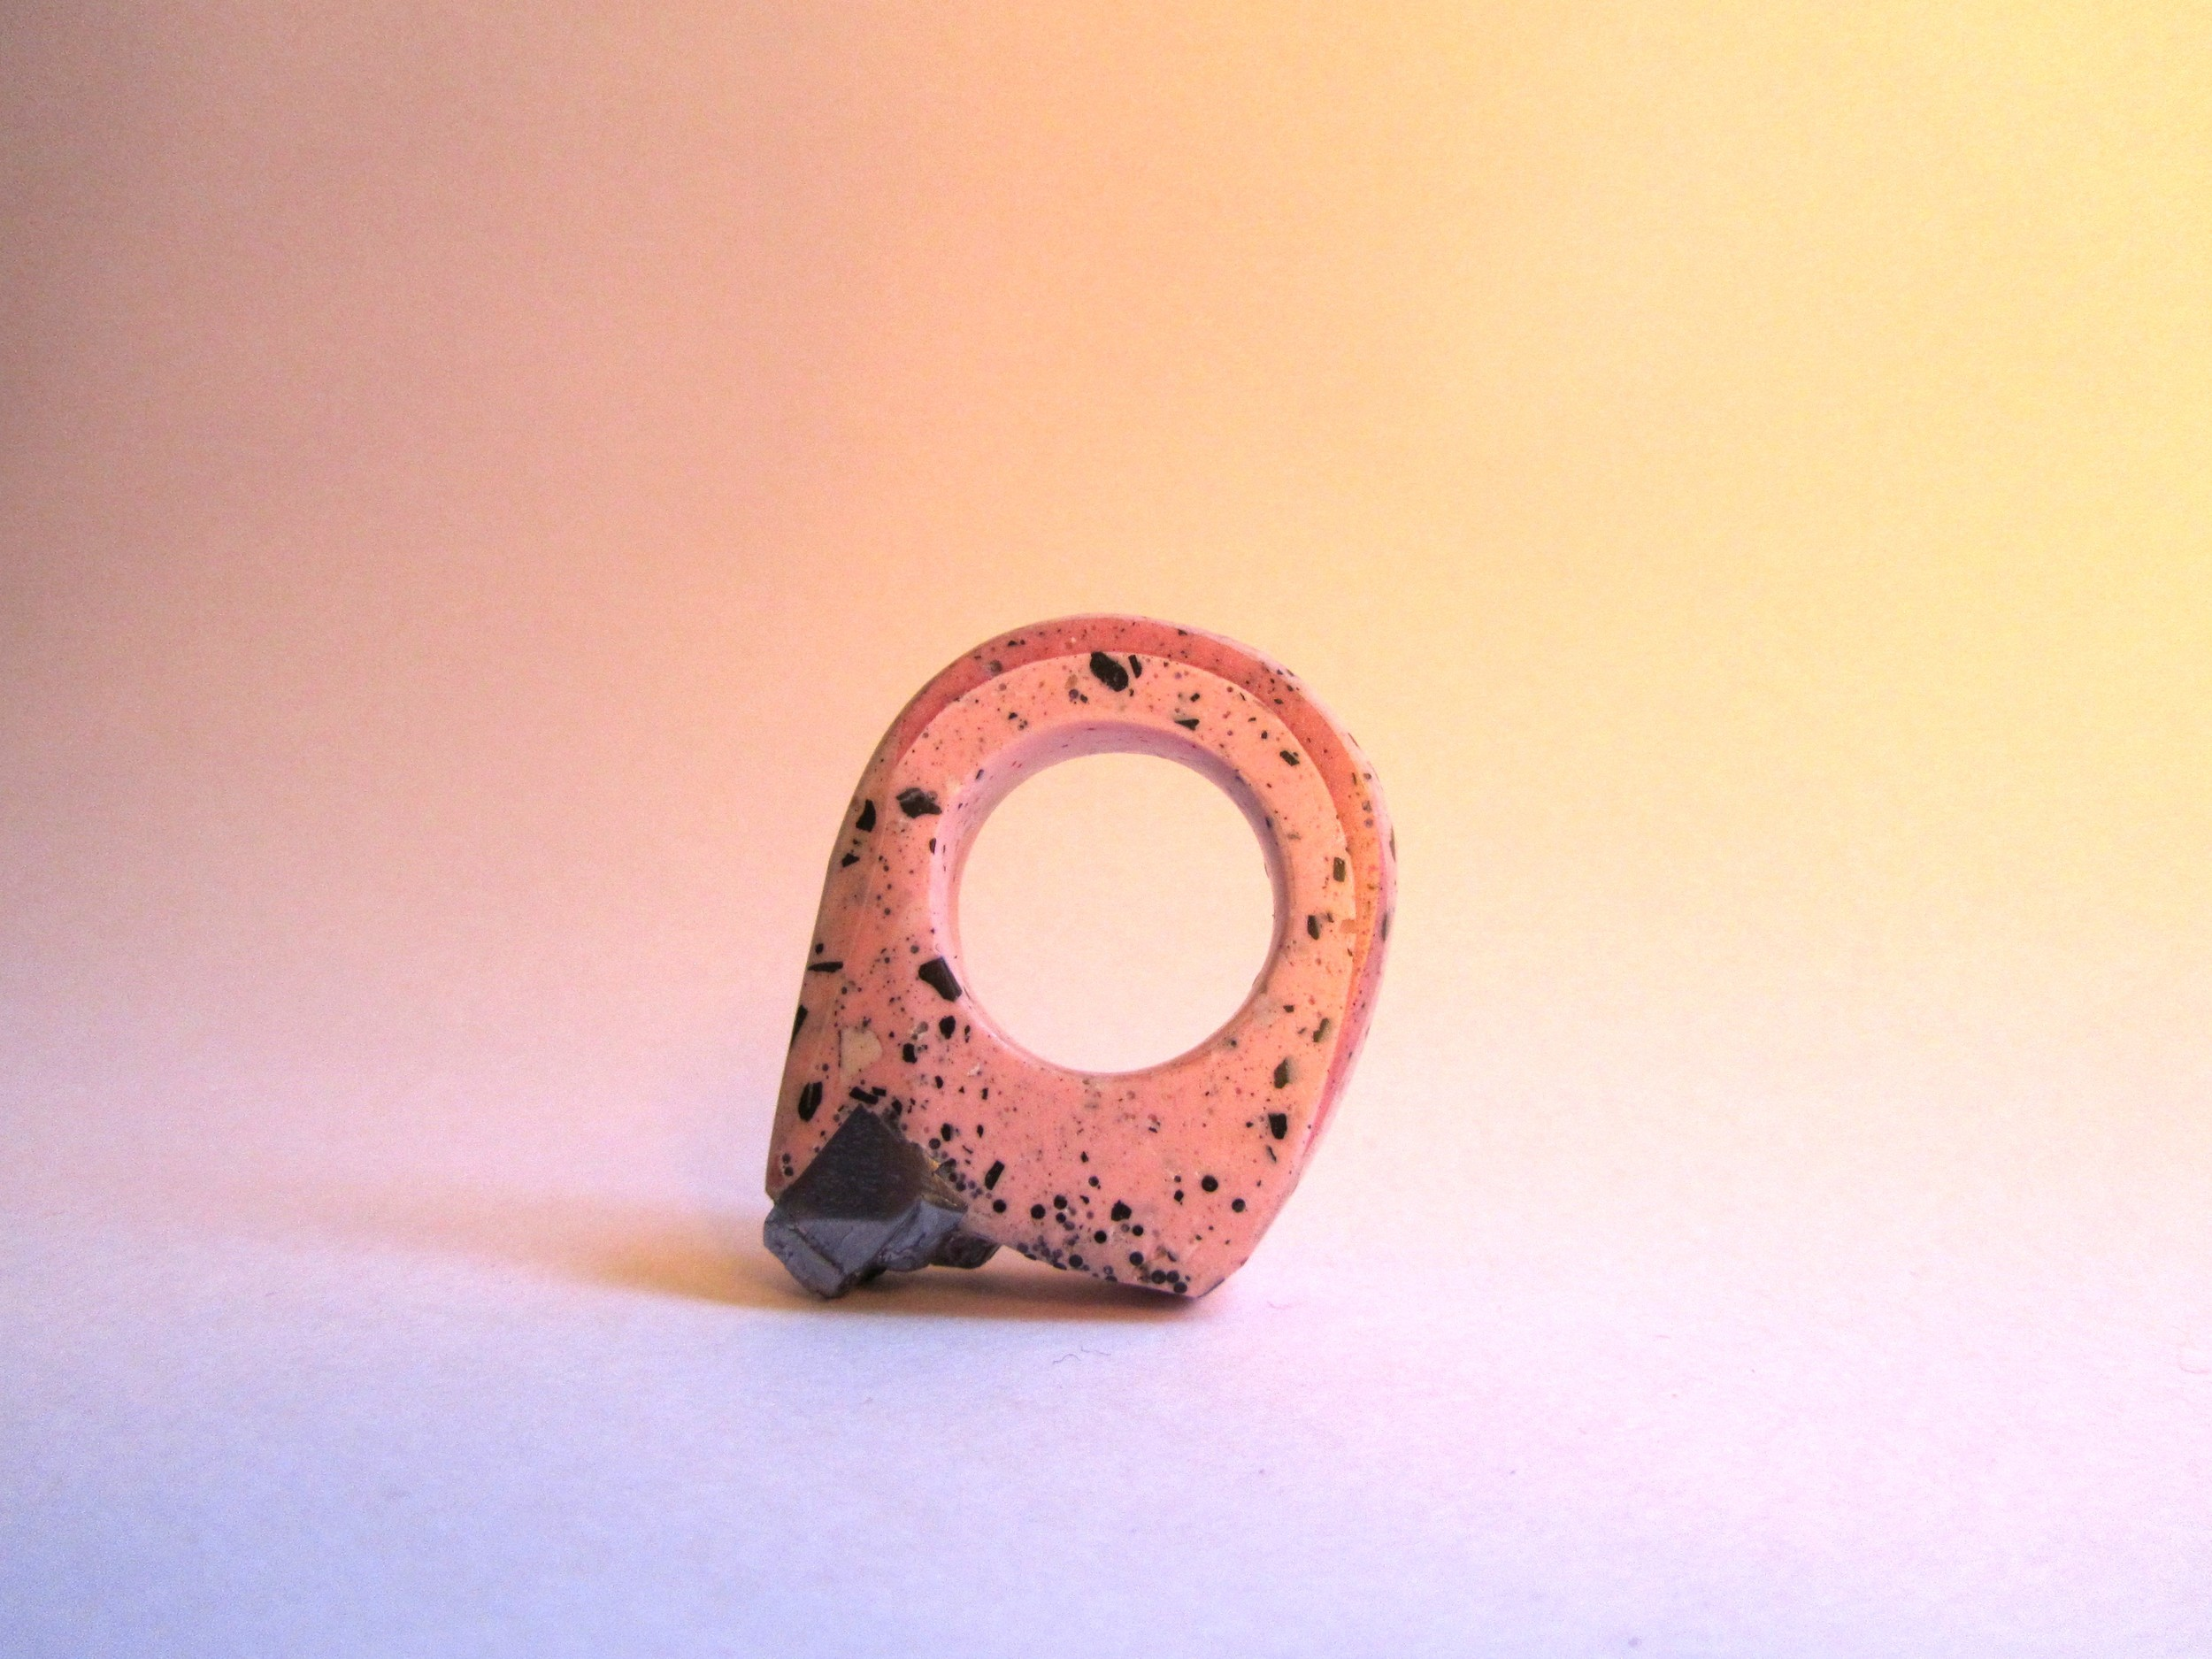 The commissioned pink pyrite ring